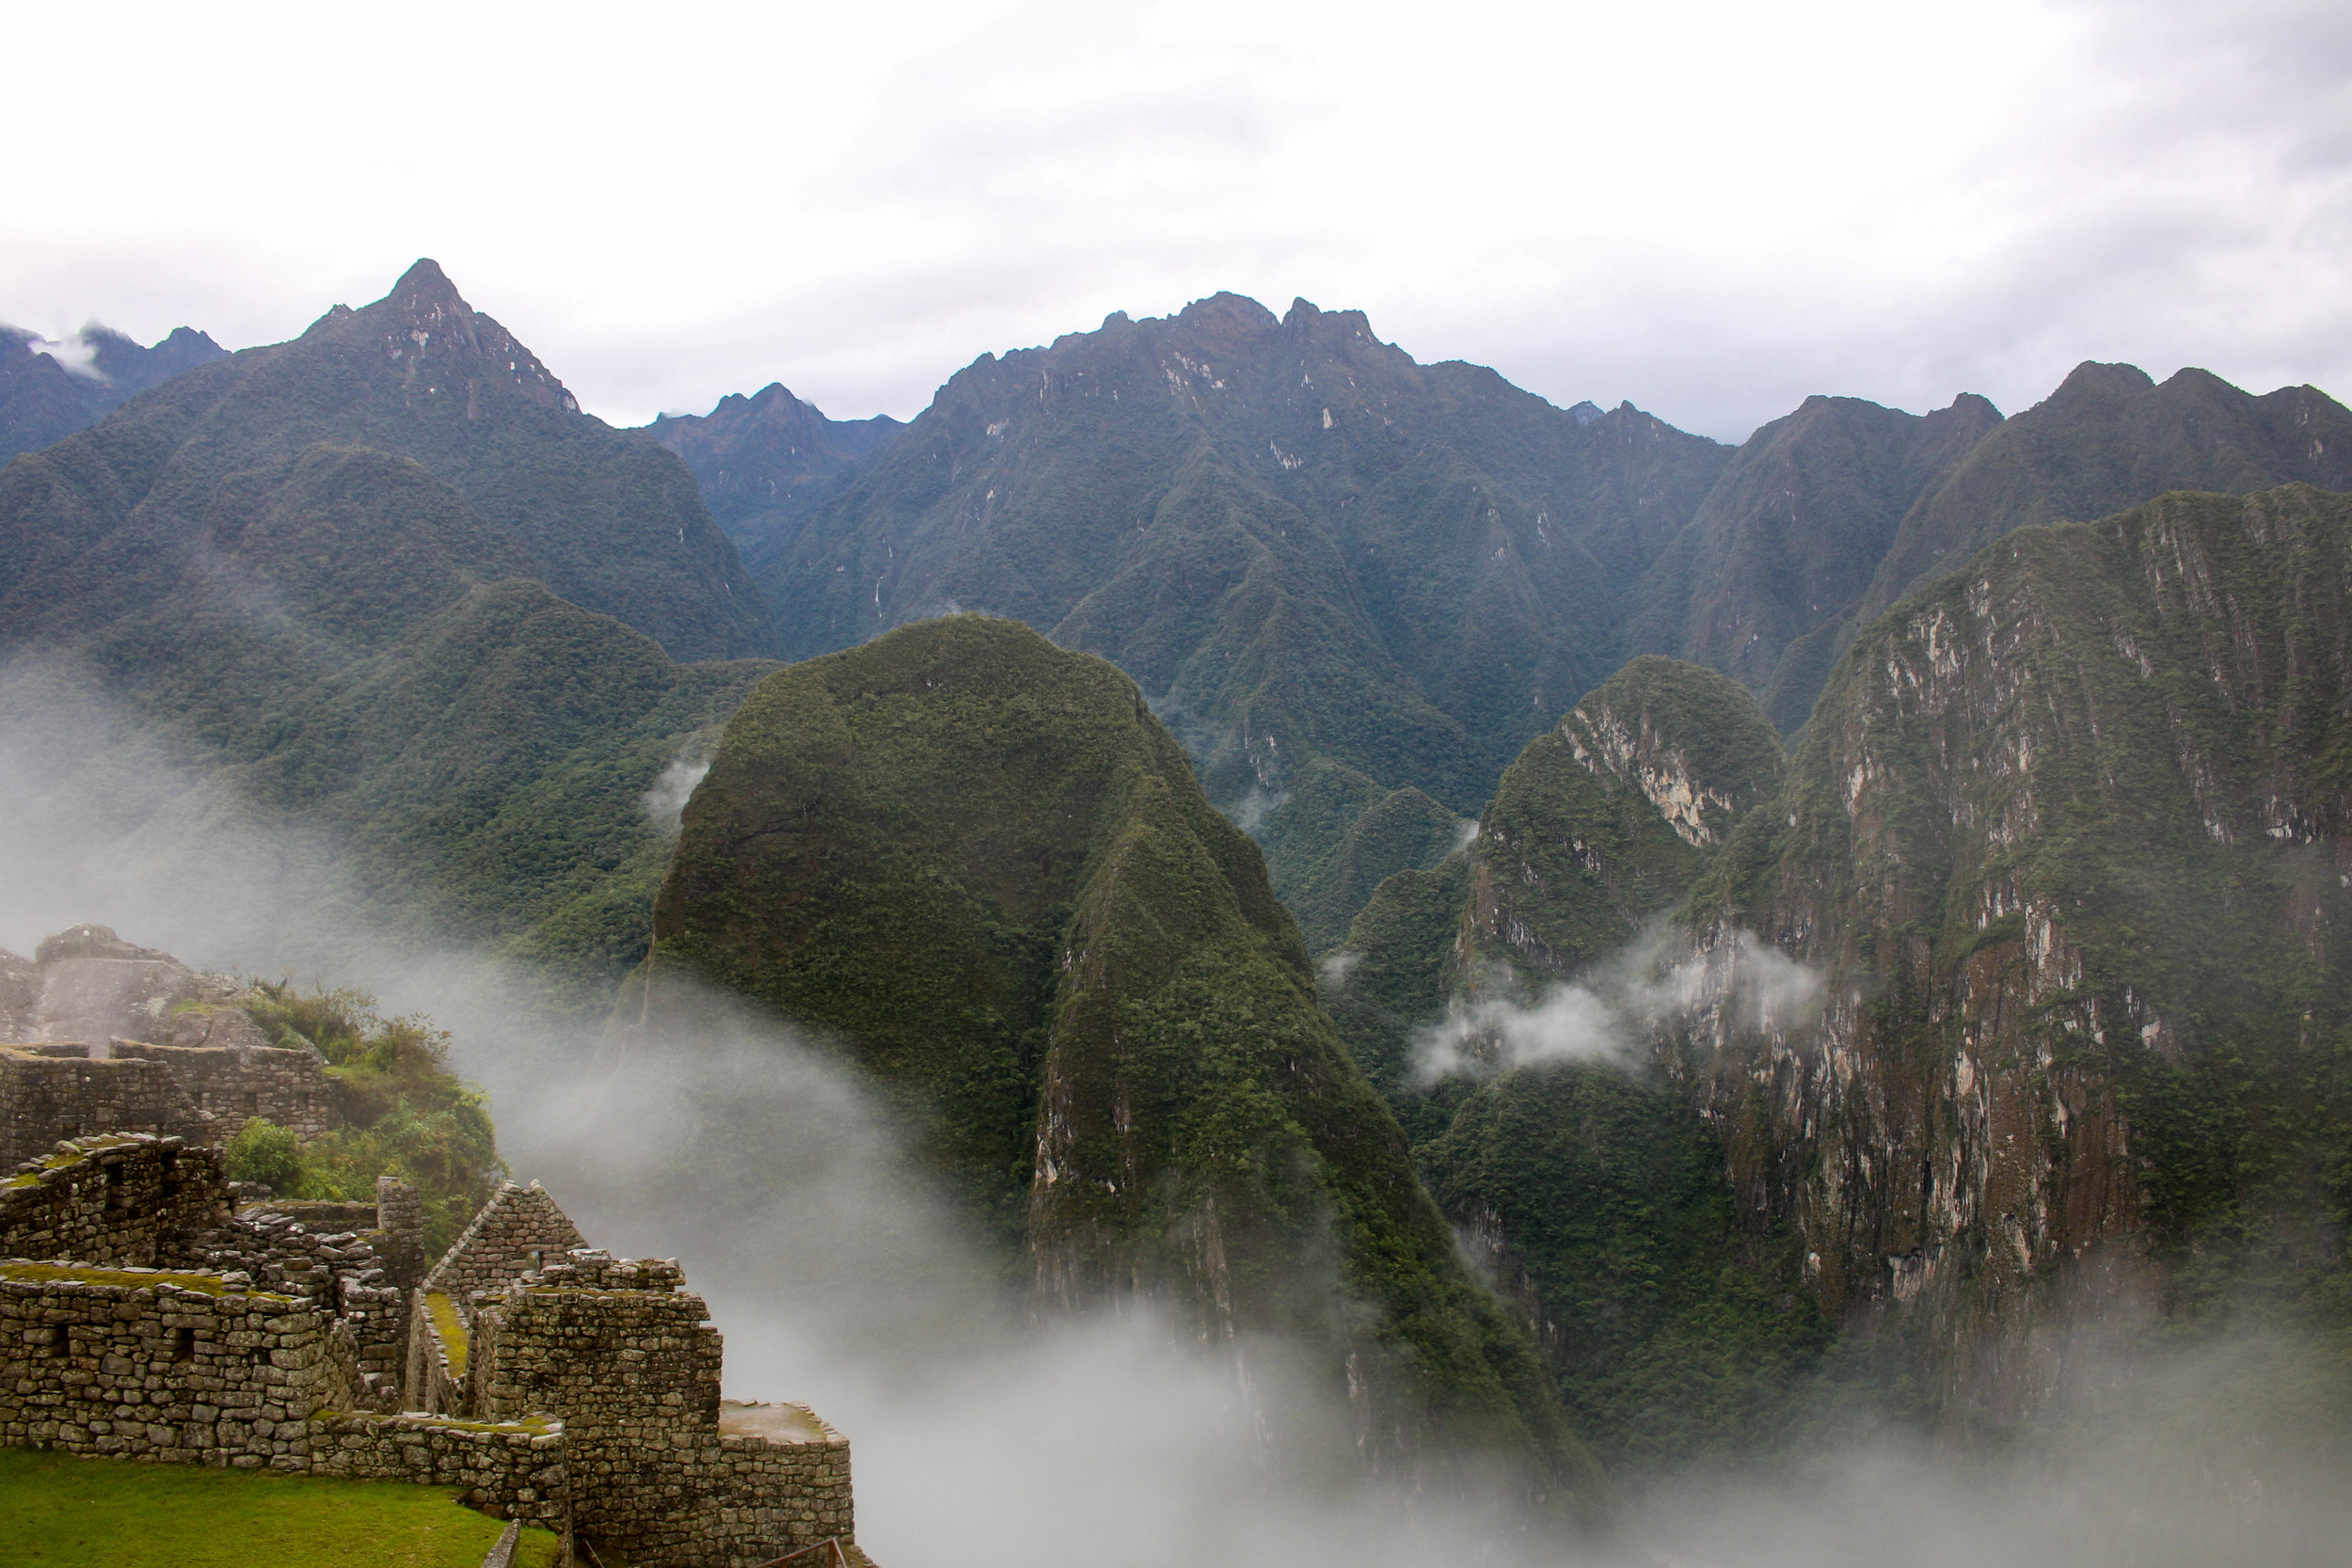 The Beauty of the Mountains at Machu Picchu, Peru